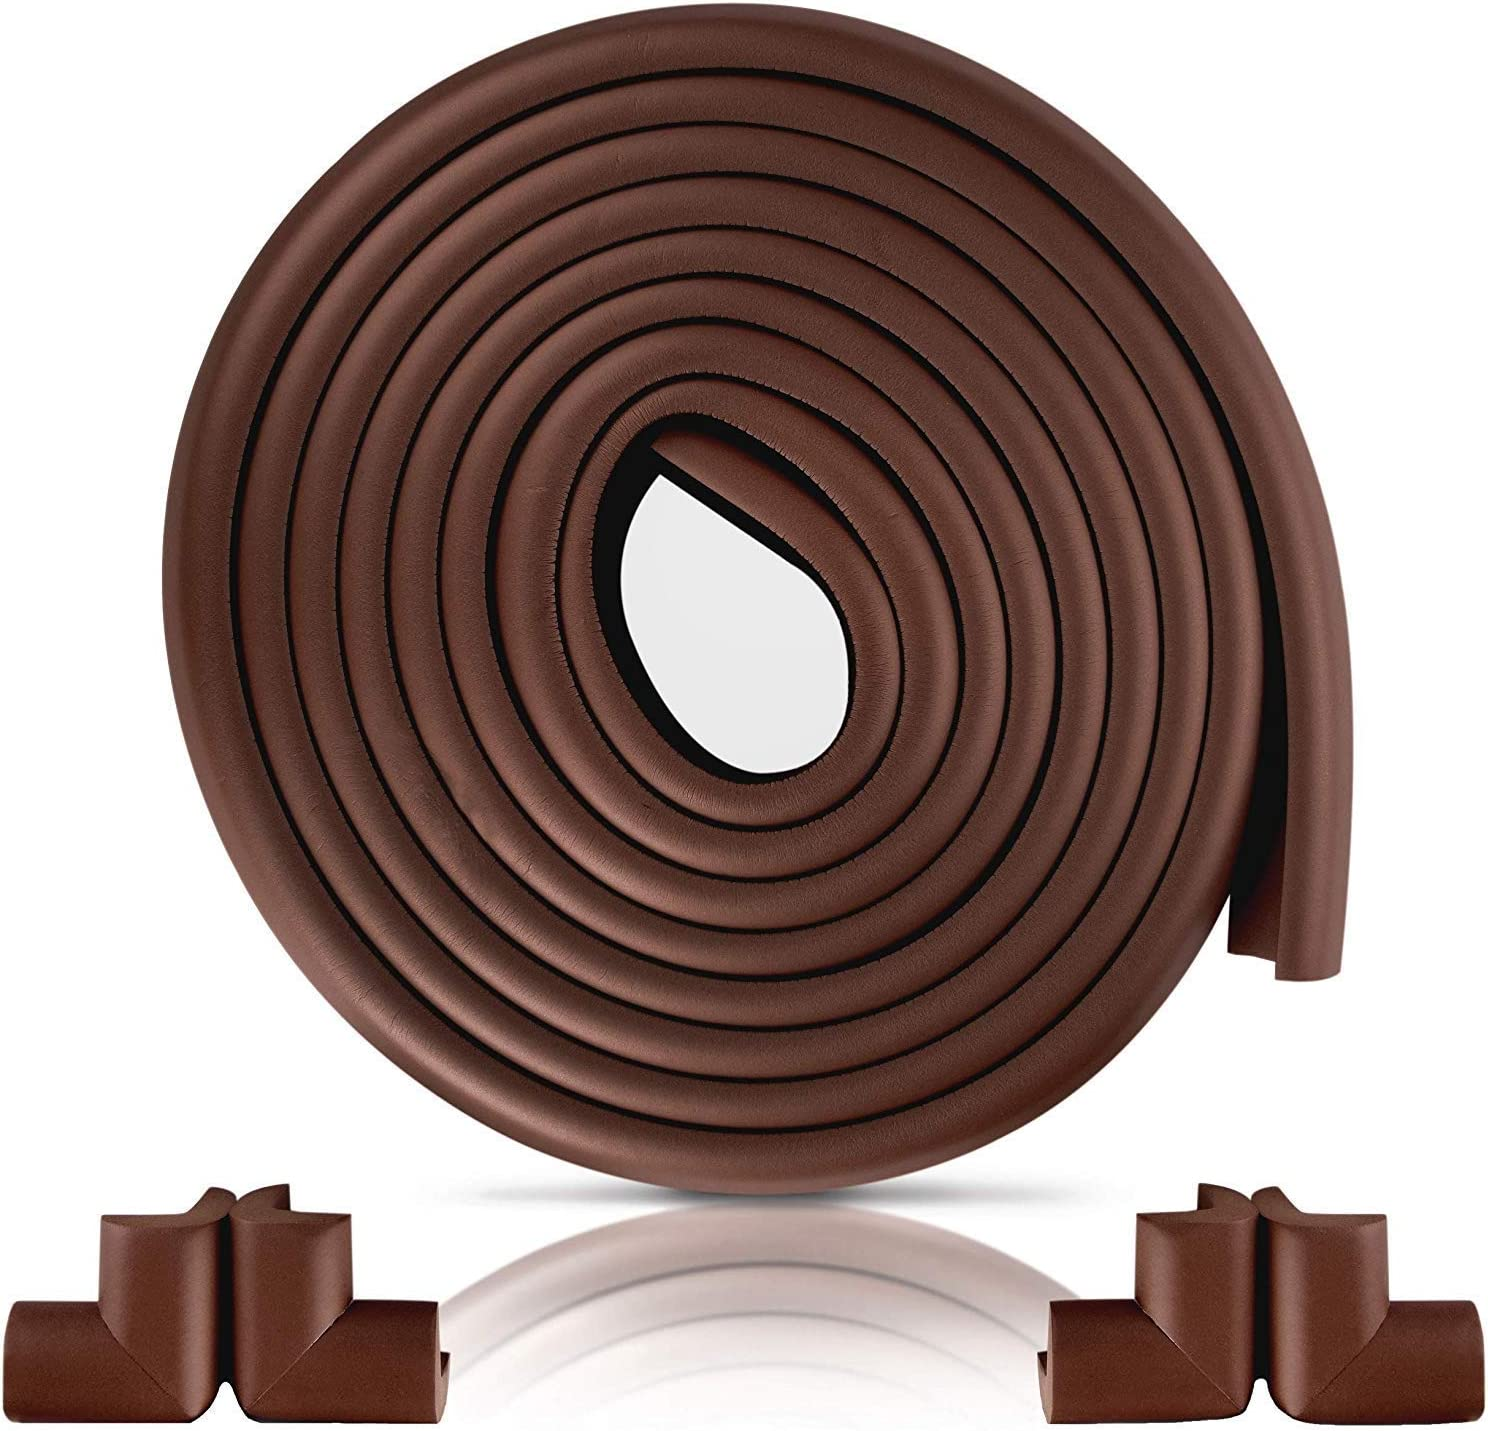 New Furniture Edge and Corner Guards | 16.2ft Protective Foam Cushion | 15ft Bumper 4 Adhesive Childsafe Corners | Baby Child Proofing Foam Set and Safe for Table | Fireplace | Countertop | Brown